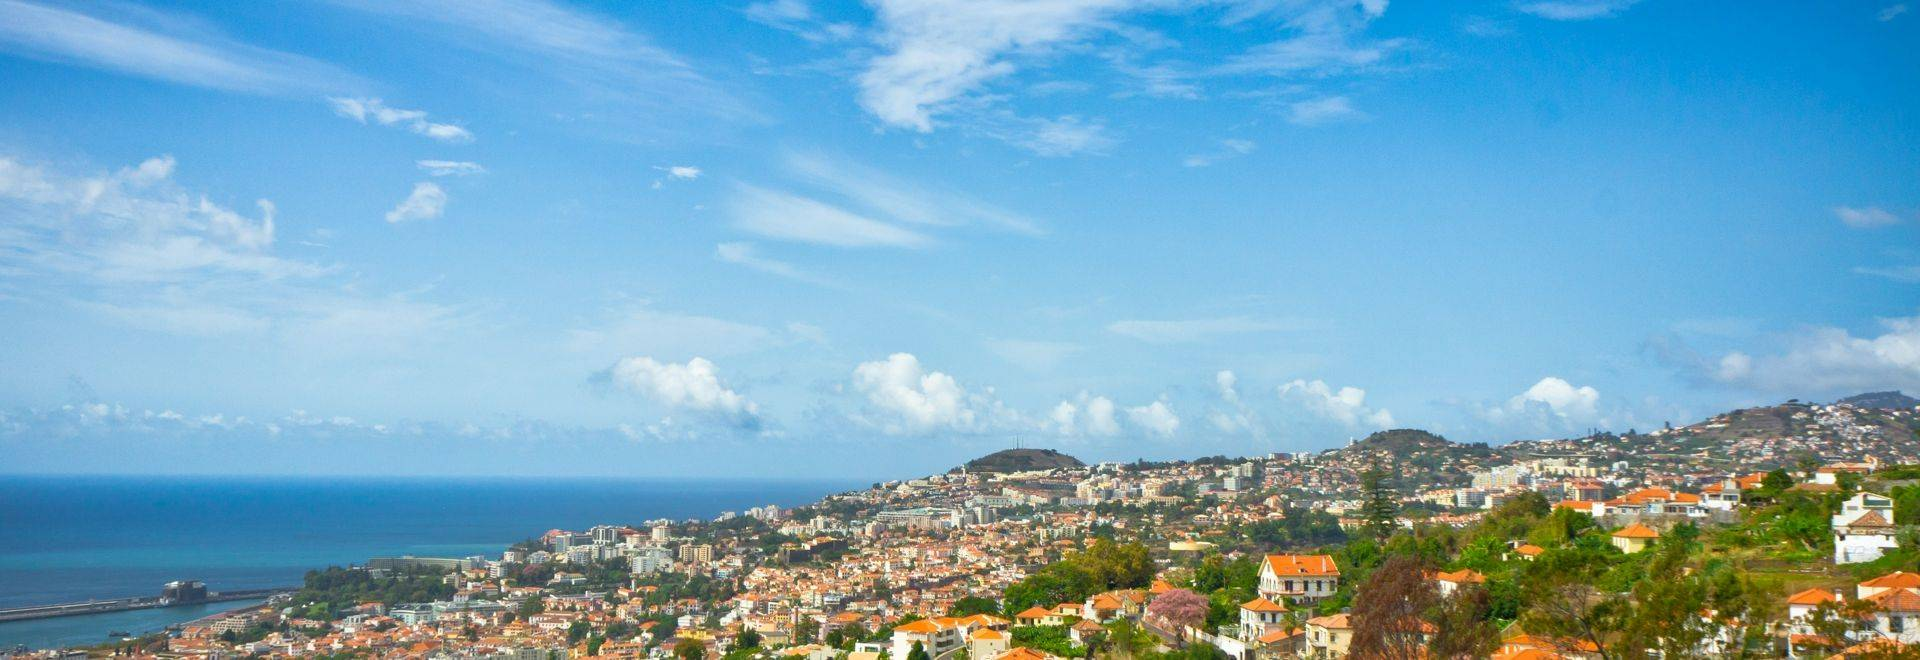 Shutterstock 132874115 Beautiful View Of Funchal